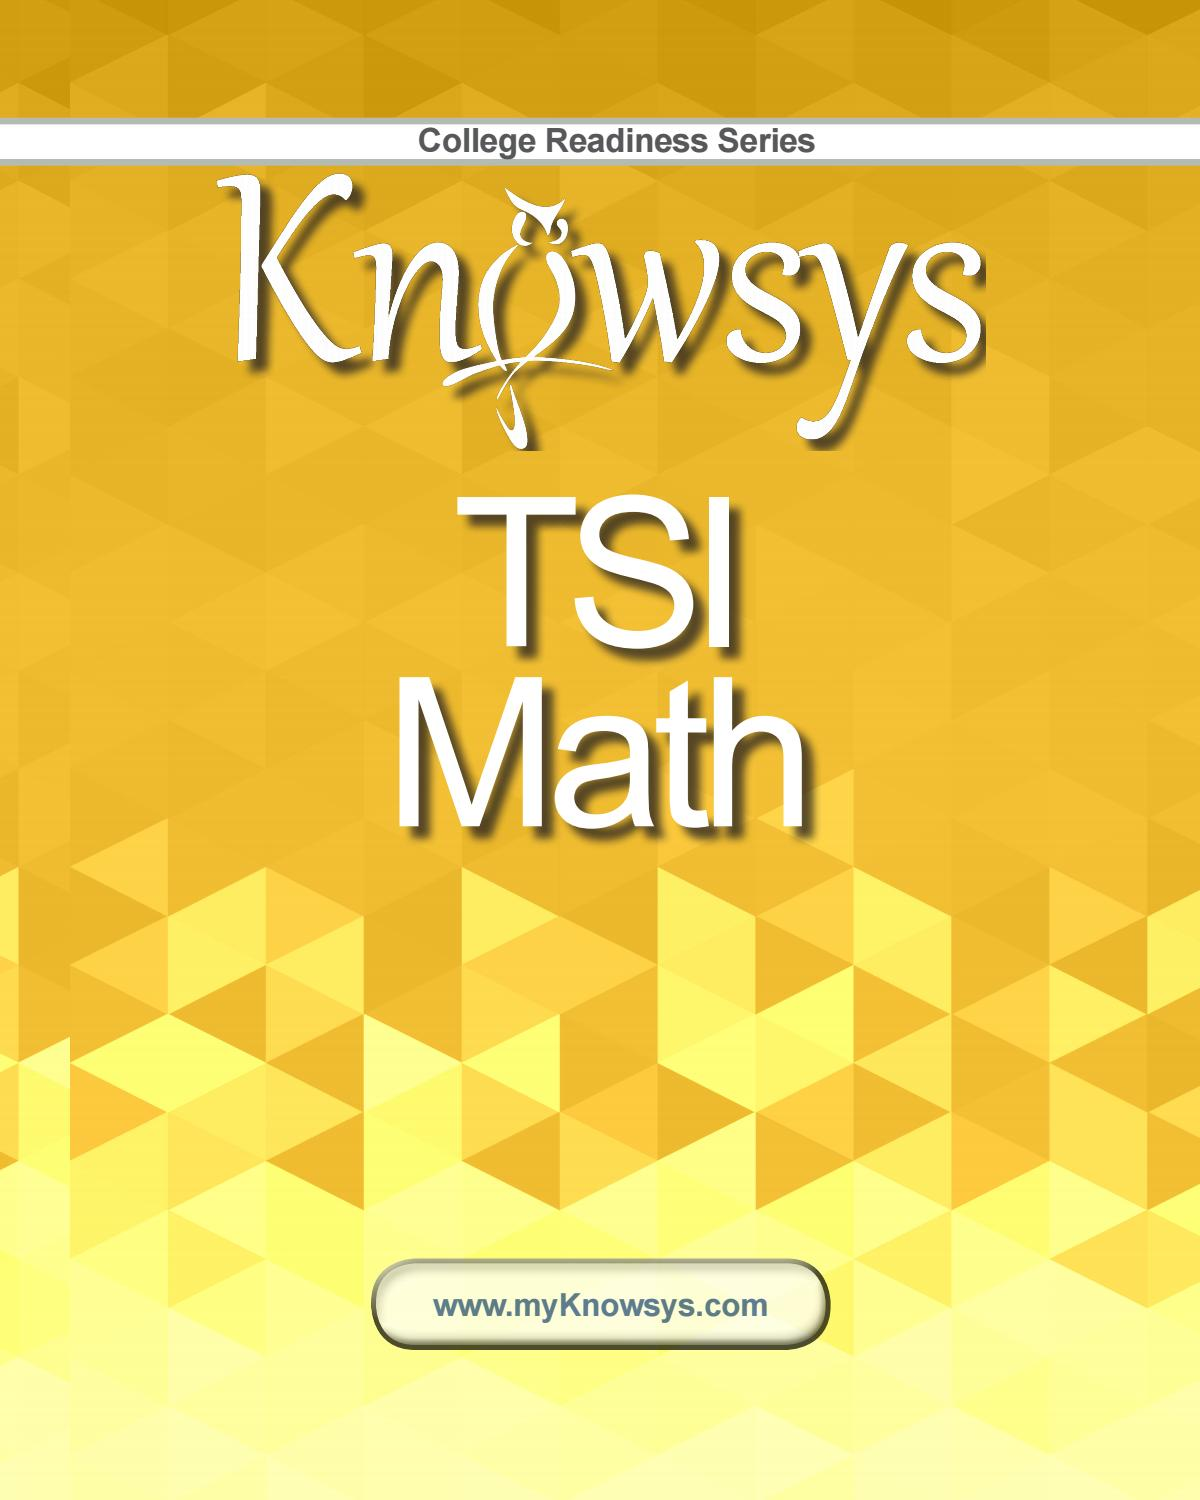 Knowsys TSI Math Sample by Knowsys Educational Services - issuu